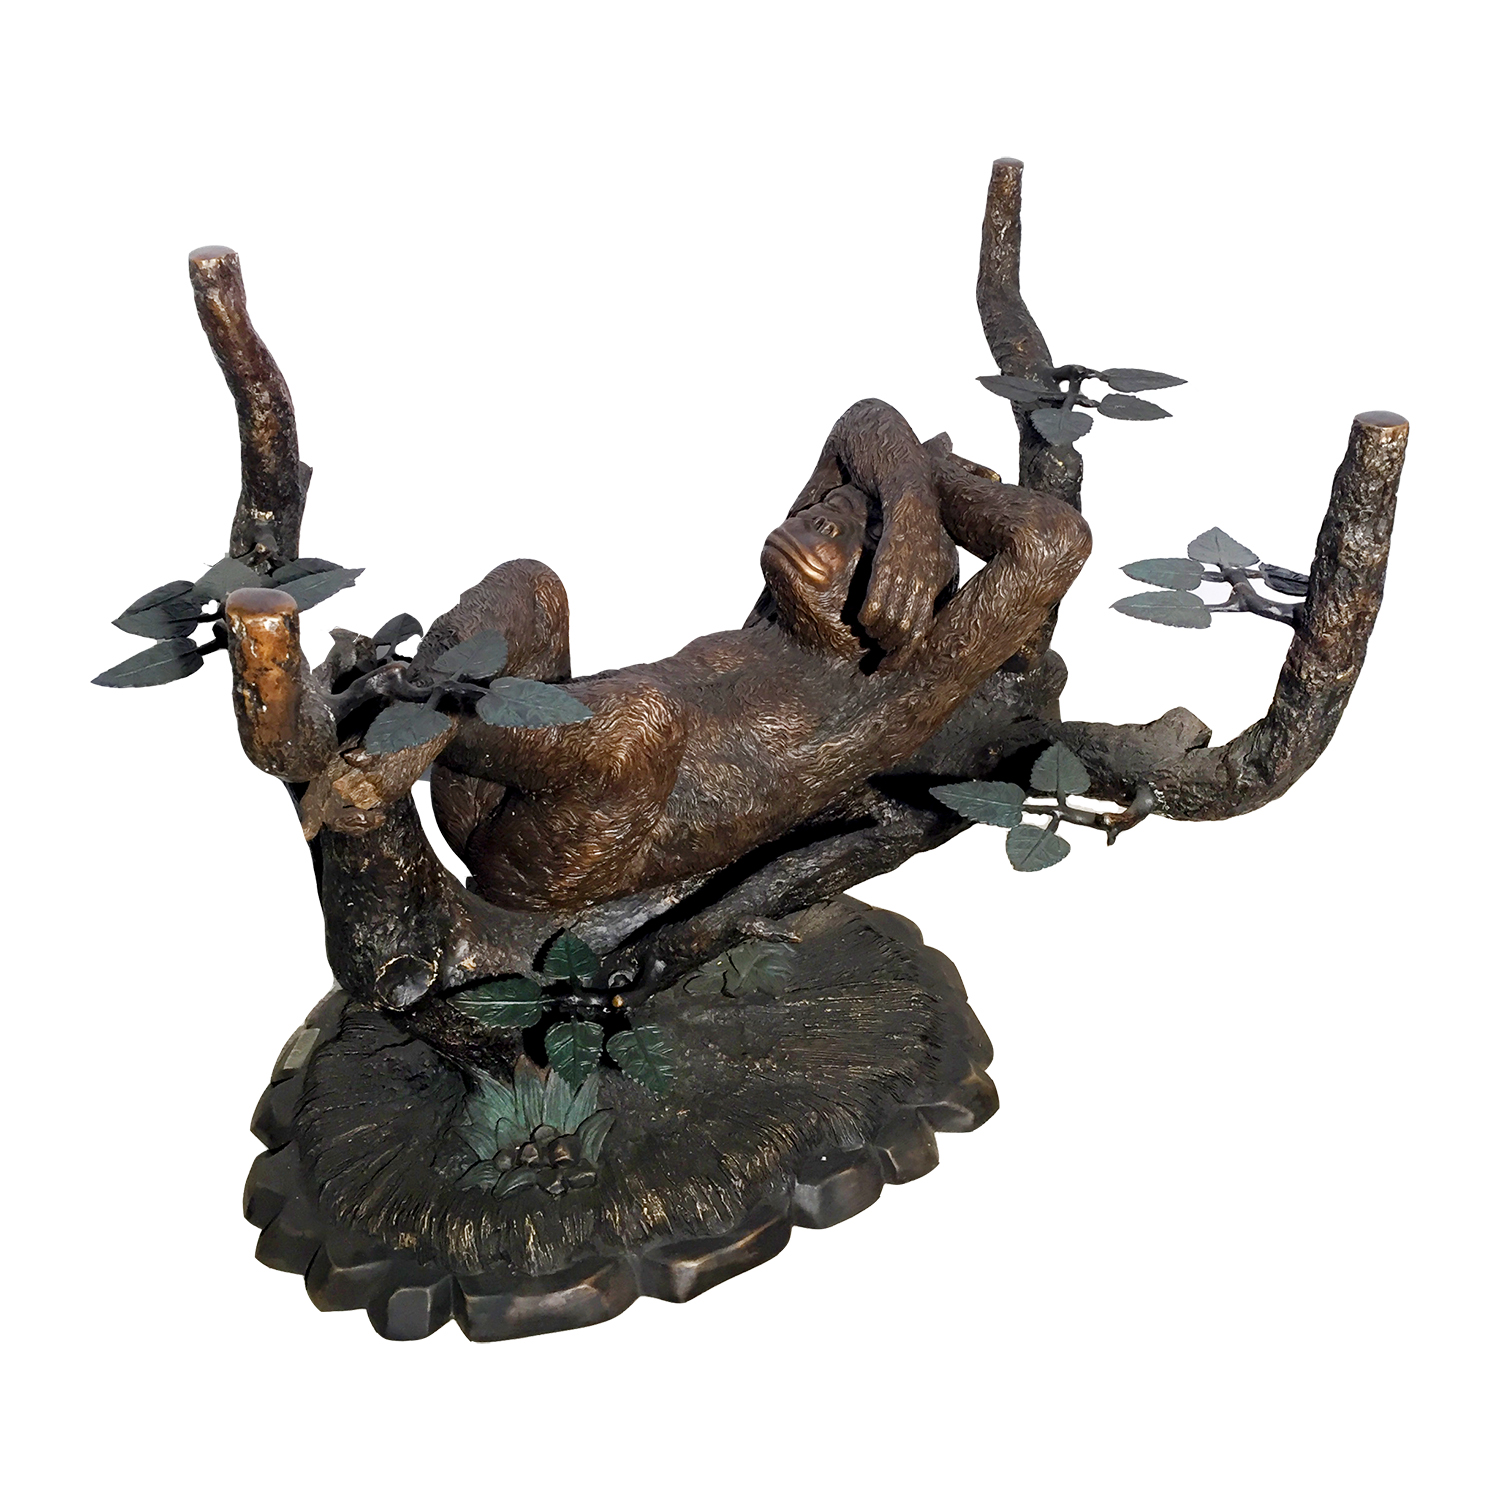 SRB20442 Bronze Monkey In Tree Table Base Sculpture Metropolitan Galleries  Bronze Sculpture Wholesale